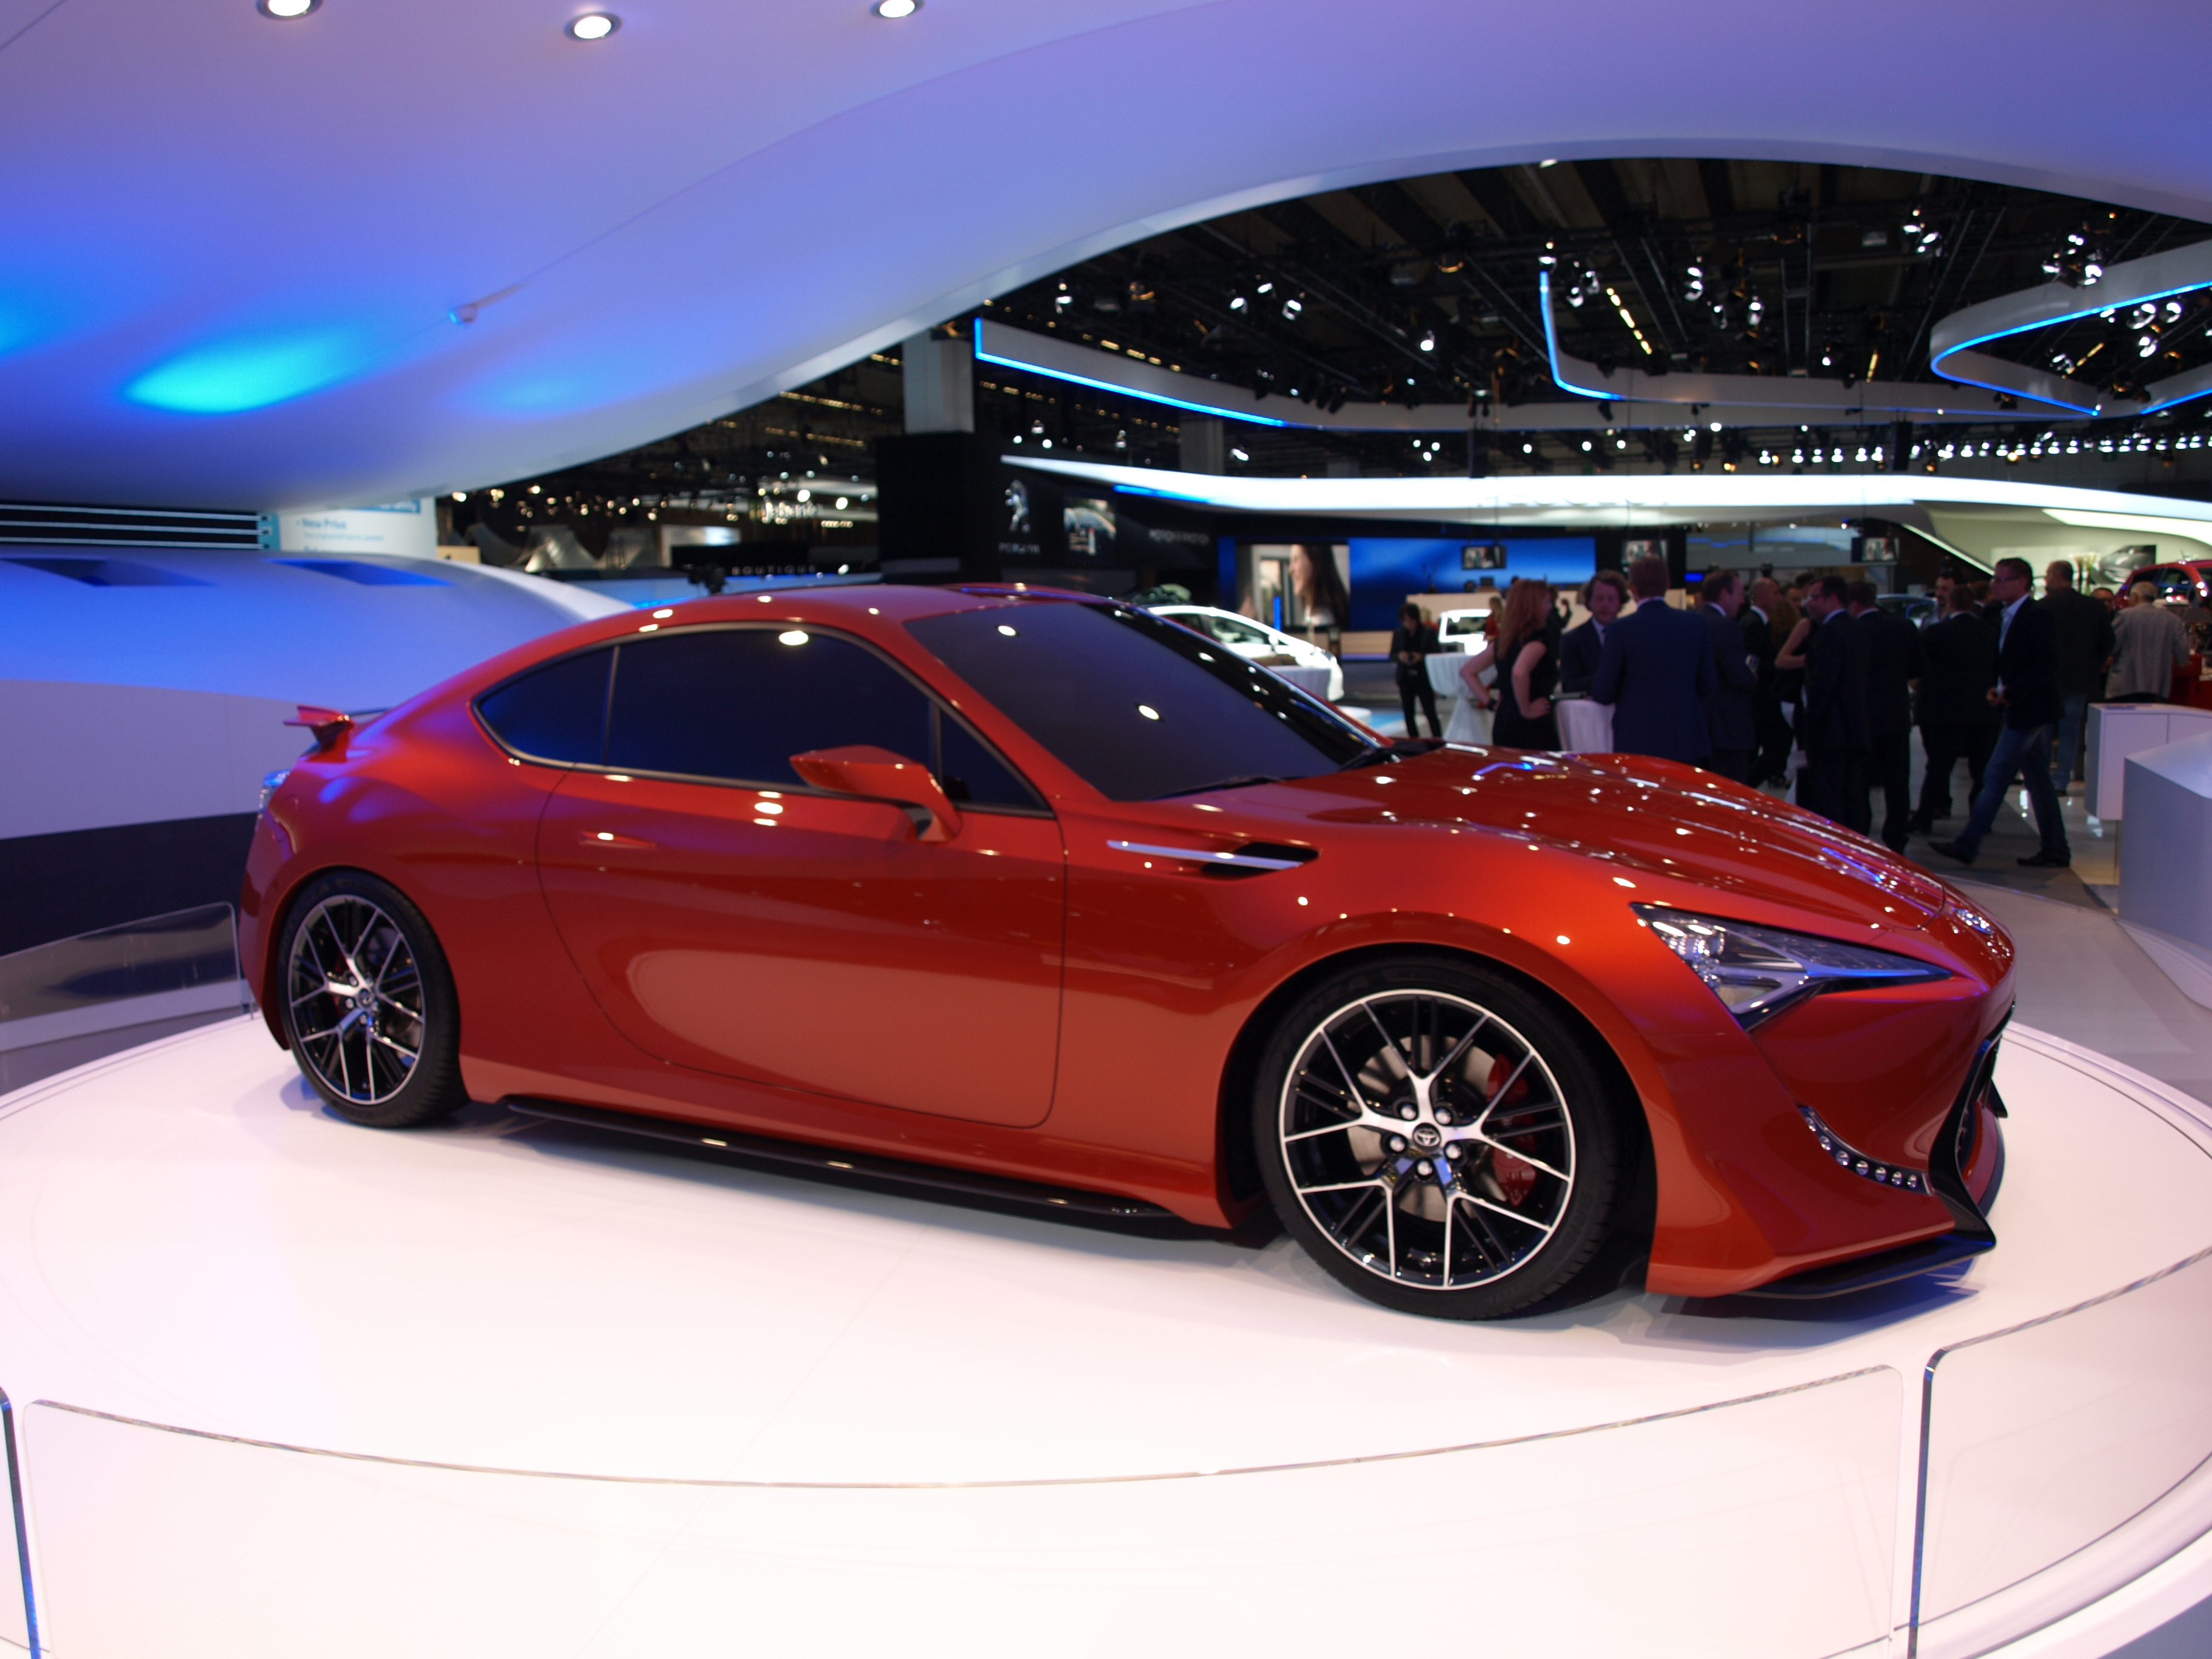 http://images.caradisiac.com/images/2/4/7/0/72470/S0-Francfort-2011-Toyota-FT-86-II-concept-237753.jpg